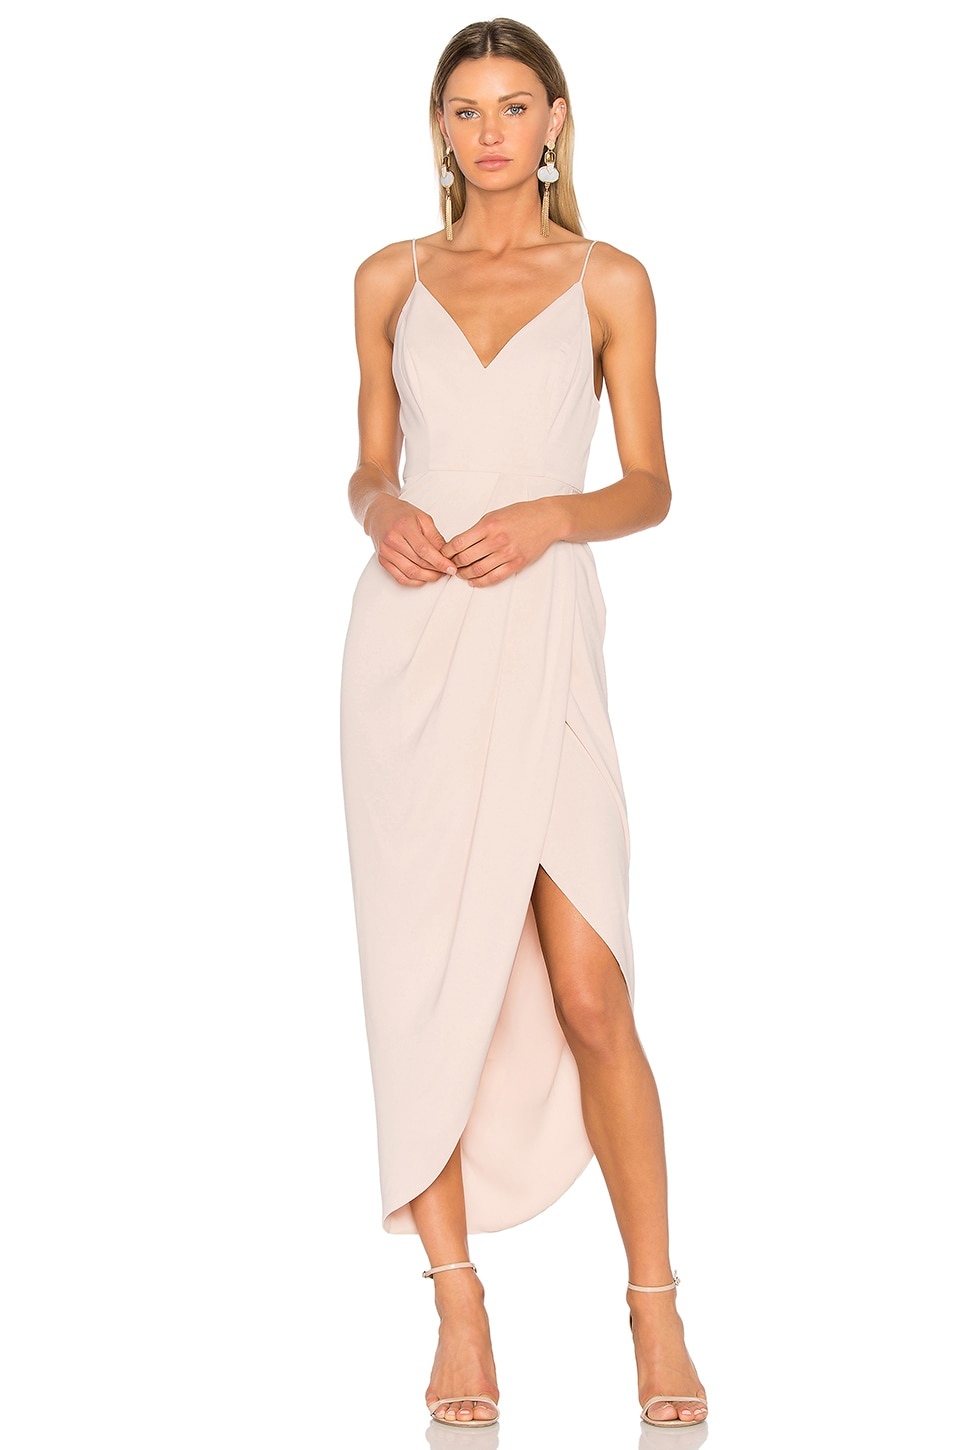 Shona Joy Cocktail Draped Dress in Ballet